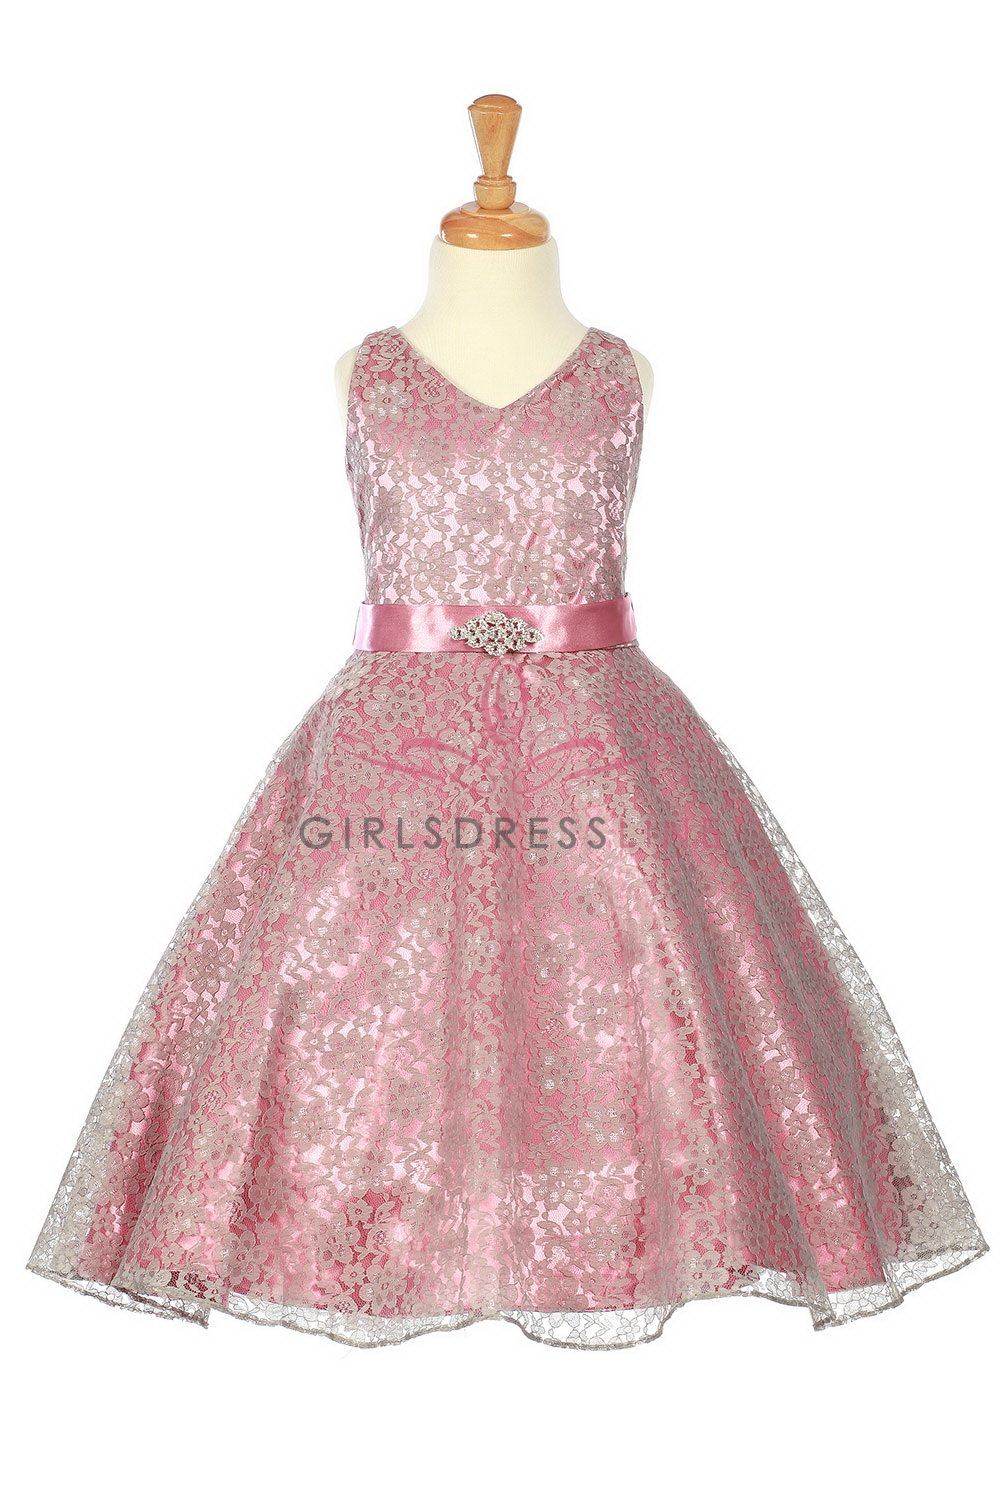 Dusty Rose Lace Floral Pattern Flower Girl Dress With Removable